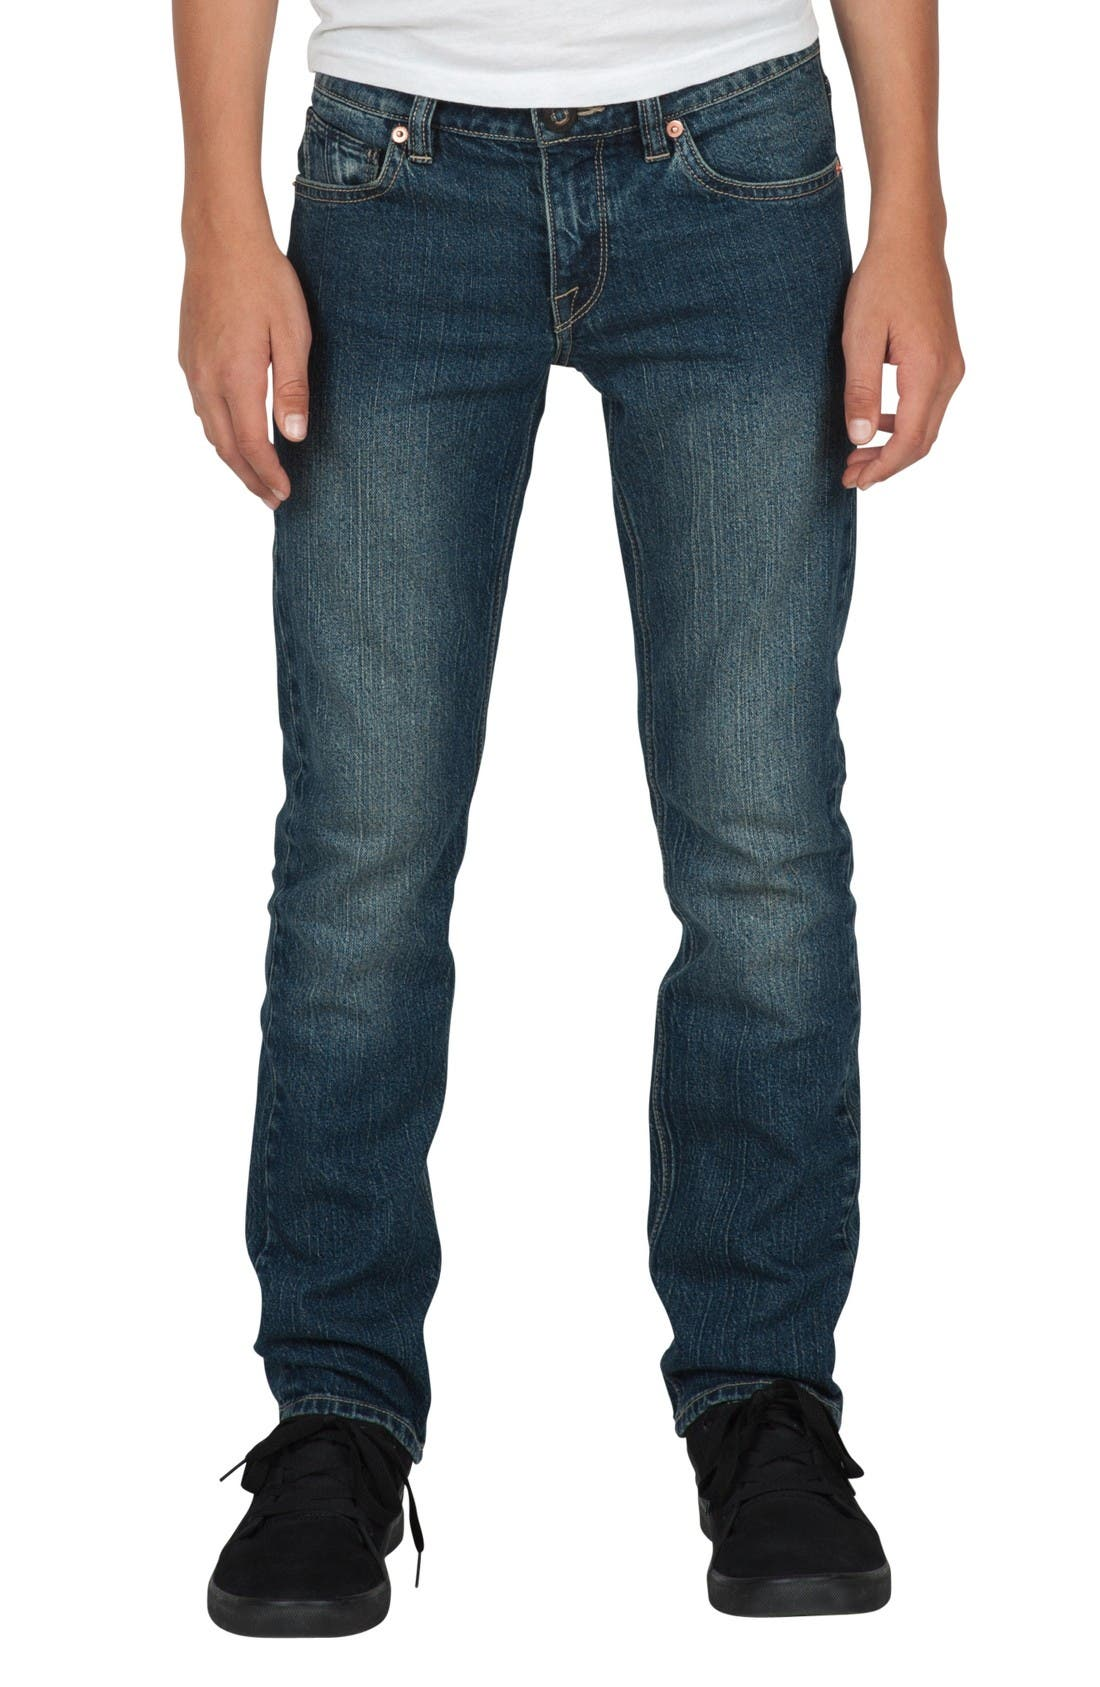 Alternate Image 1 Selected - Volcom 'Vorta' Slim Fit Jeans (Toddler Boys & Little Boys)